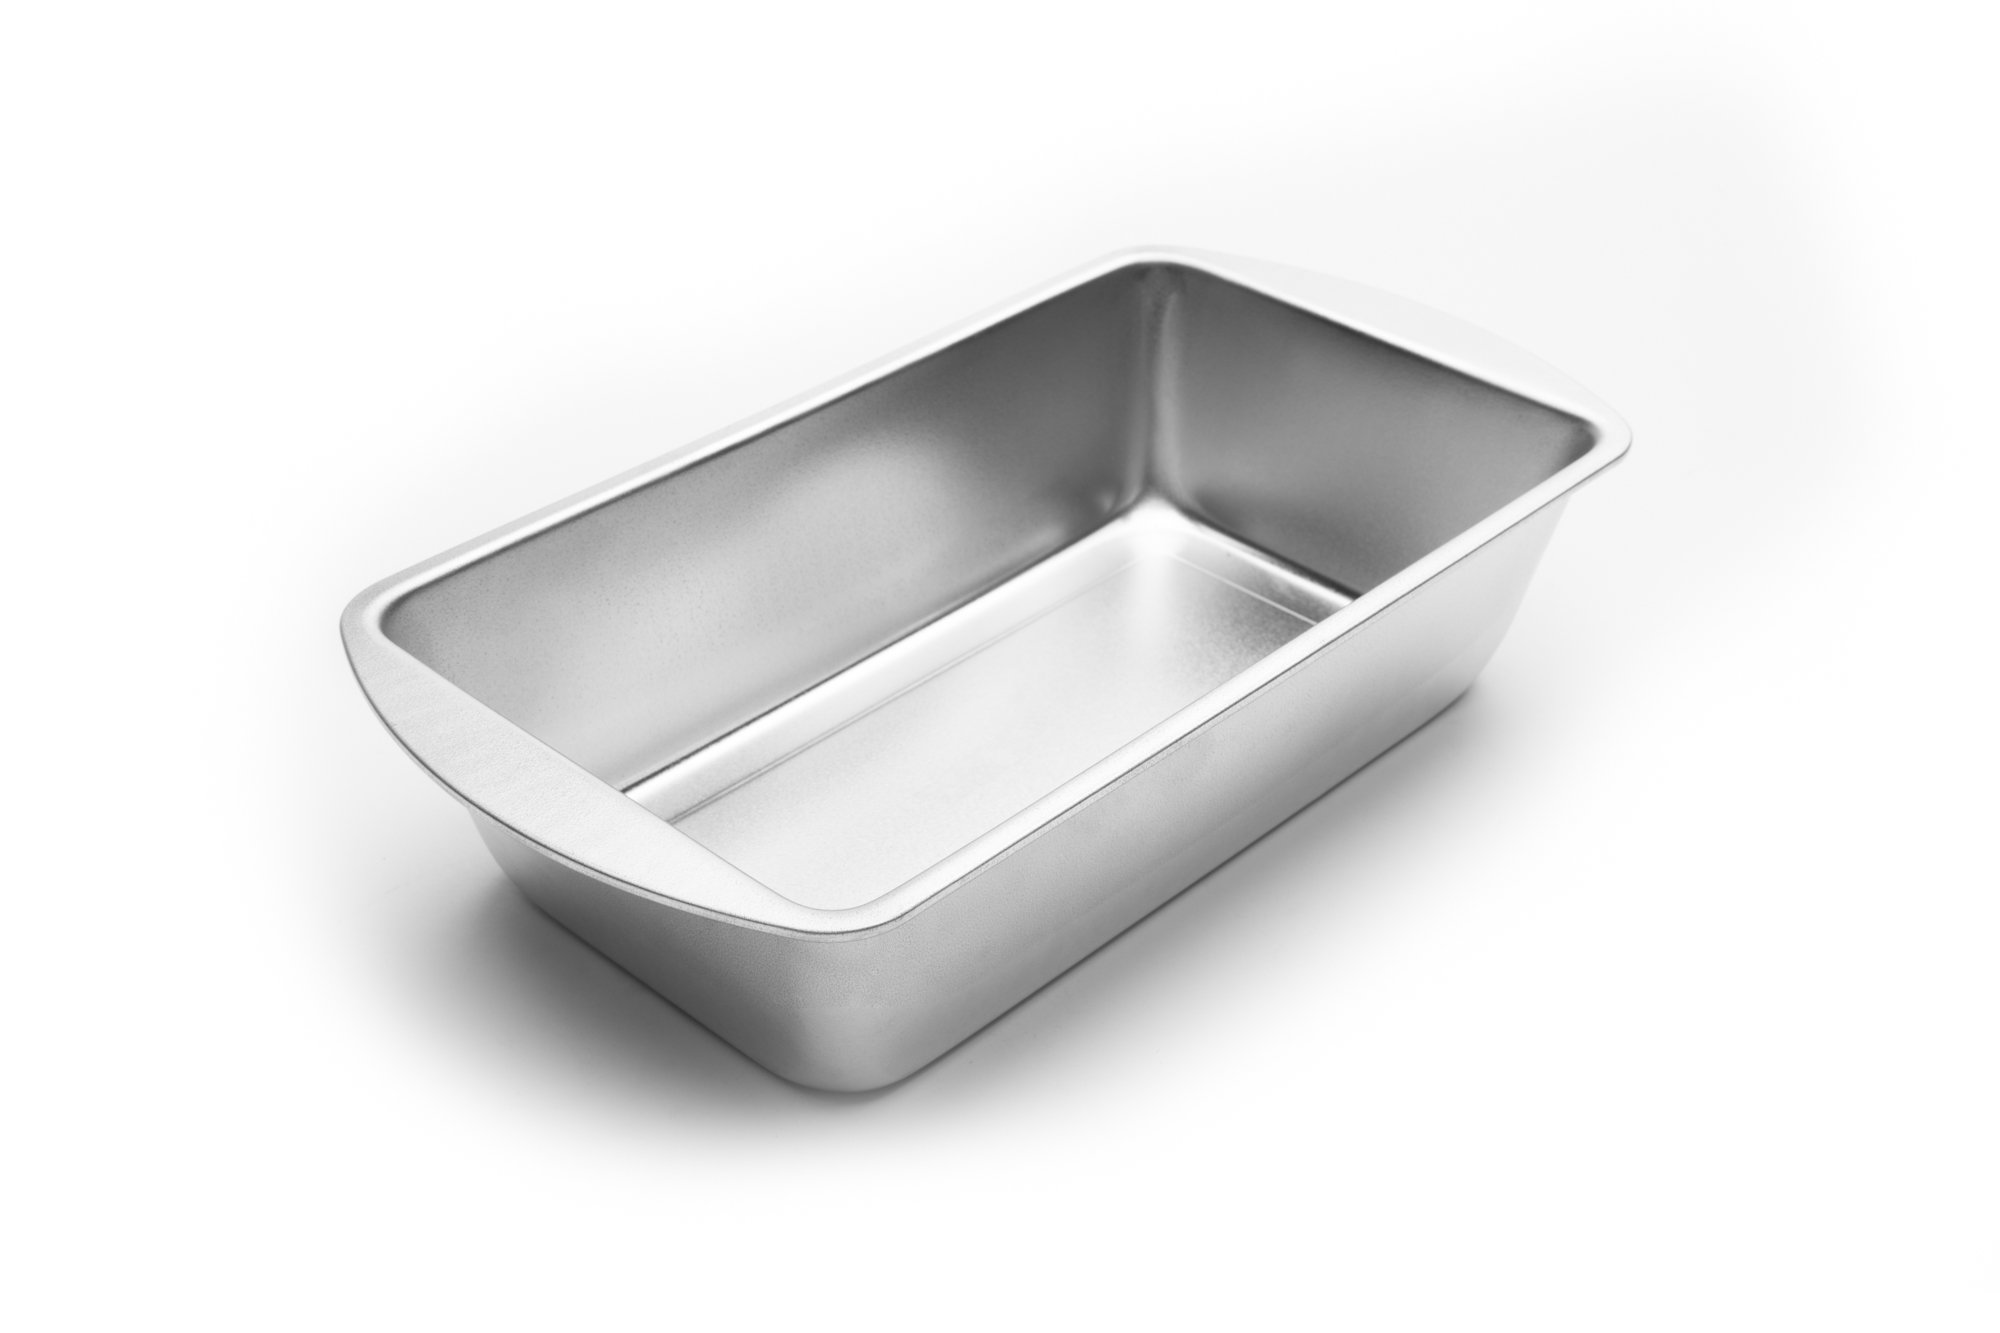 Fox Run 4672 Bread Pan, Tin-Plated Steel, 9.25-Inch